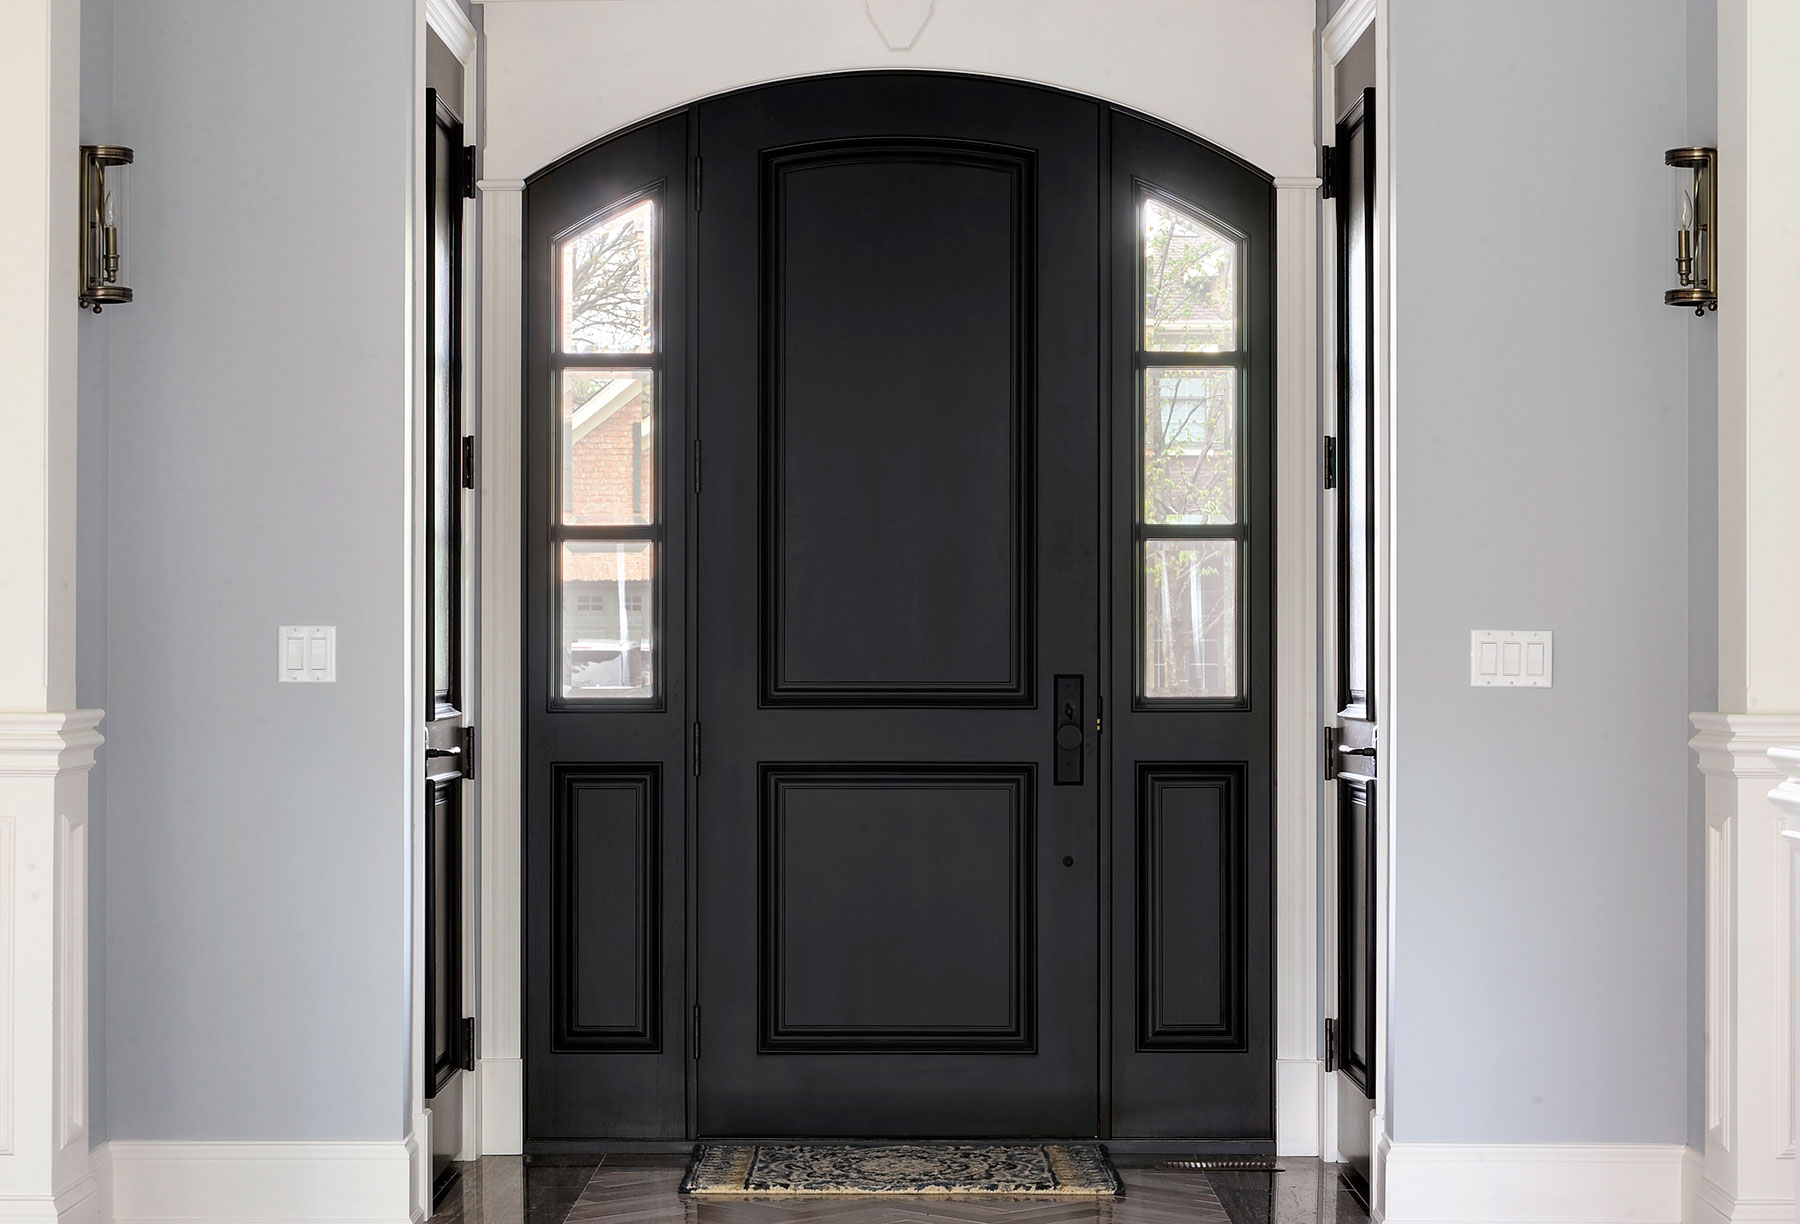 Custom Wood Front Entry Doors | Custom Arched Top Mahogany Wood Front Entry Door with Sidelites  - Glenview Doors - Custom Doors in Chicago